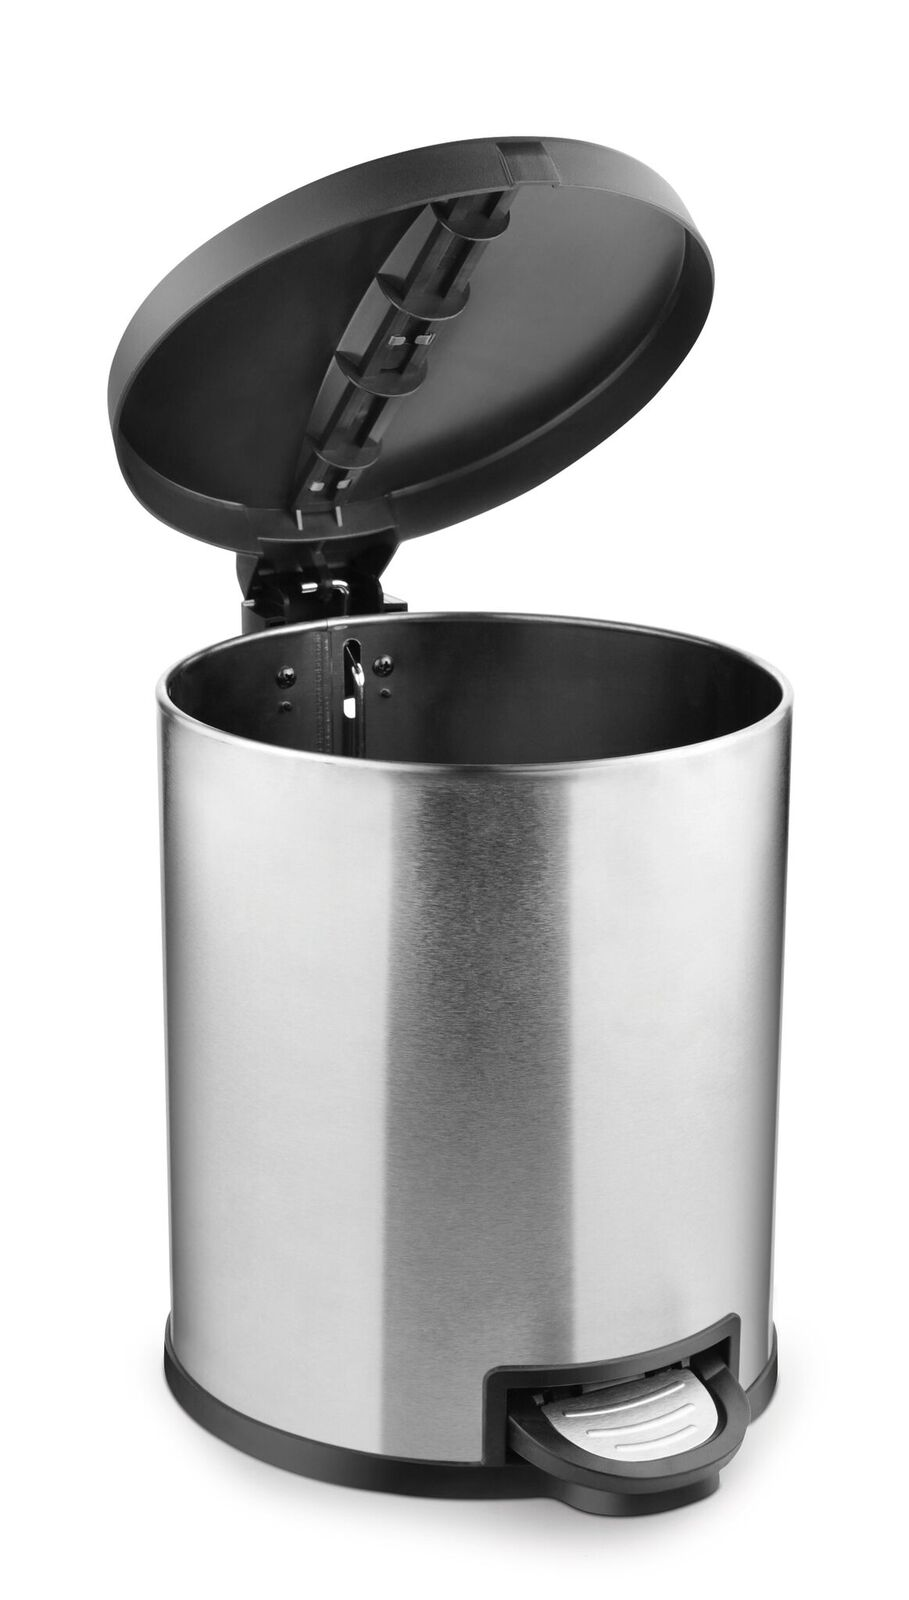 Kleeny Dustibin 12ltr Plastic and Stainless Steel Dustbins in Silver Colour by Bonita